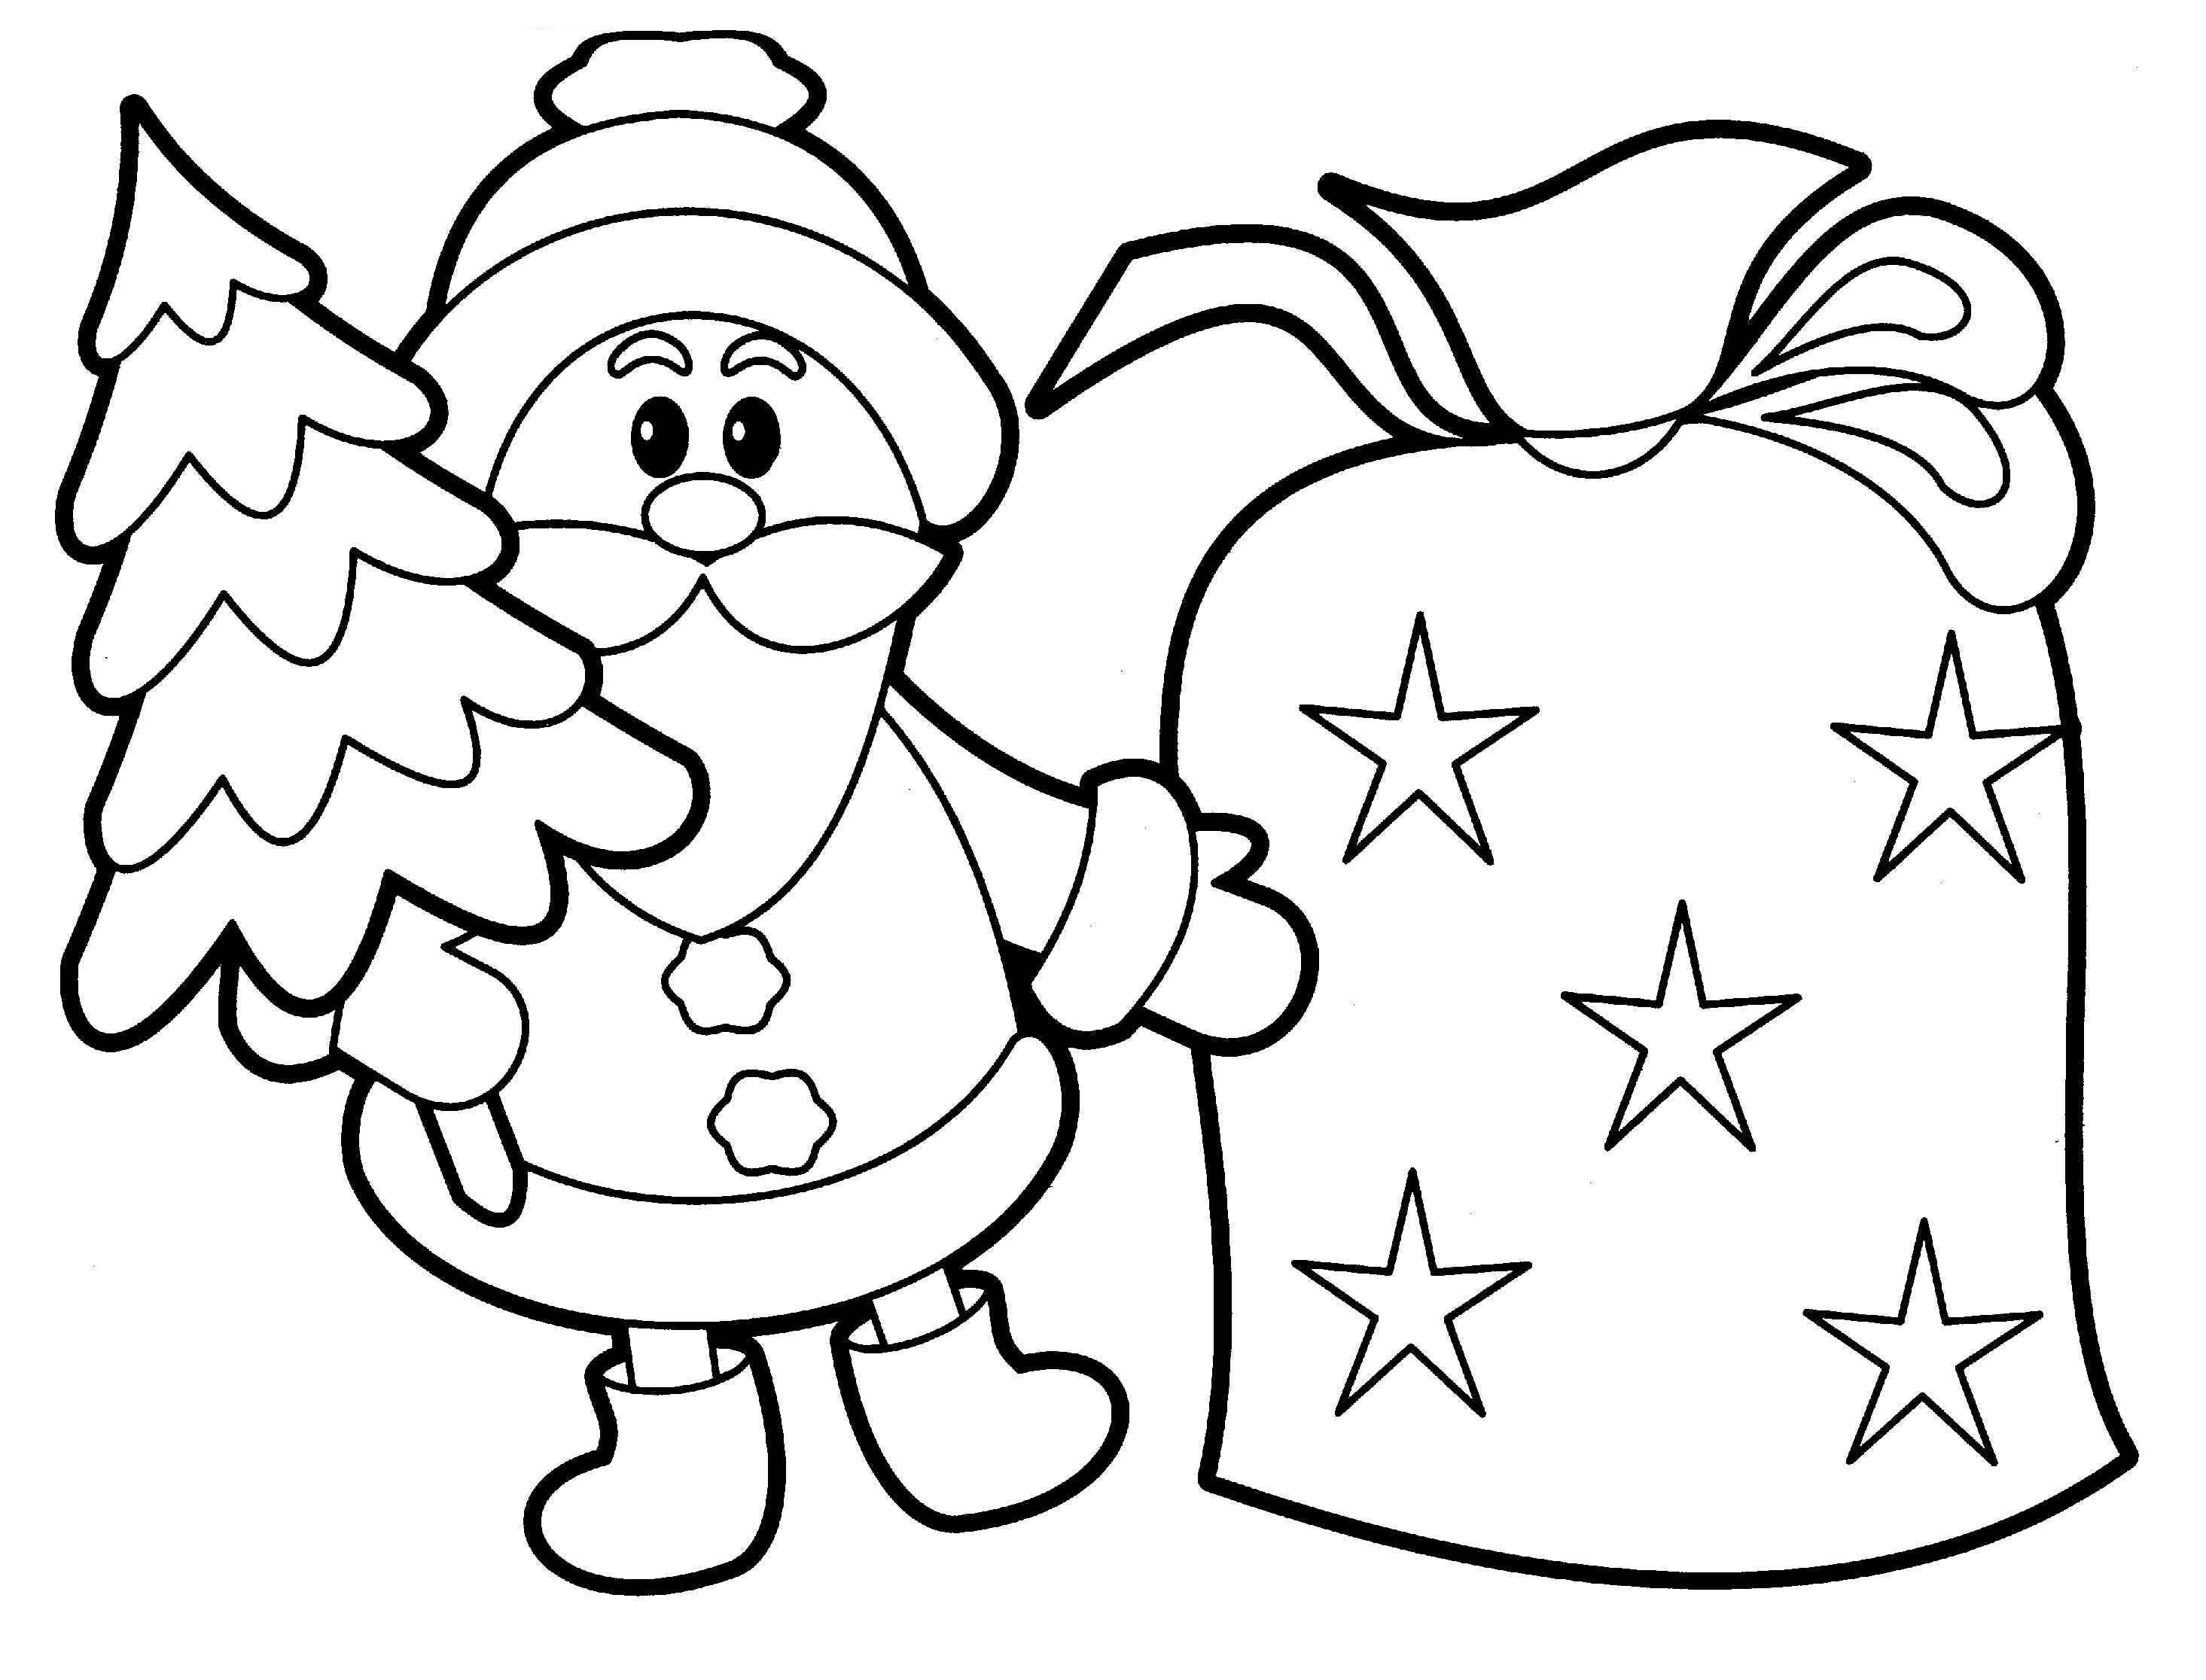 Printable Santa Claus Coloring Pages | Coloring Me